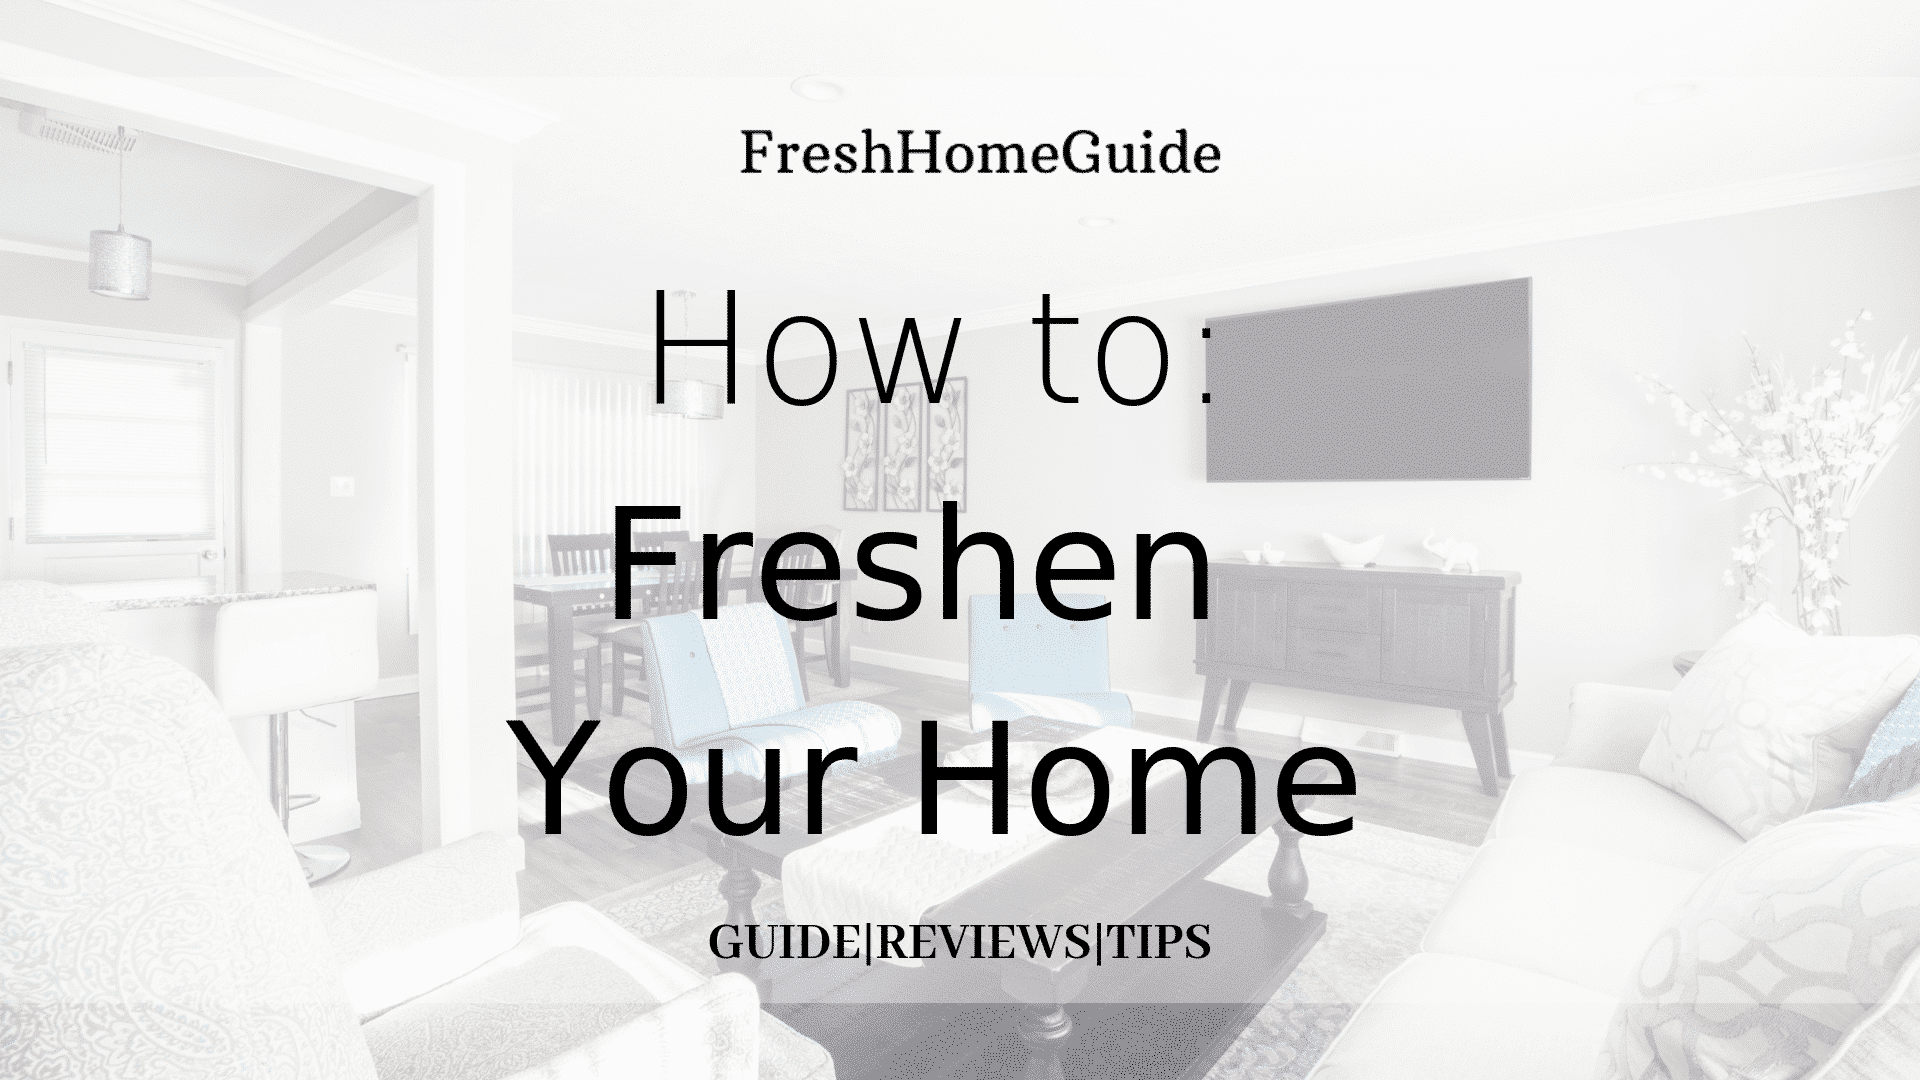 How to keep home fresh